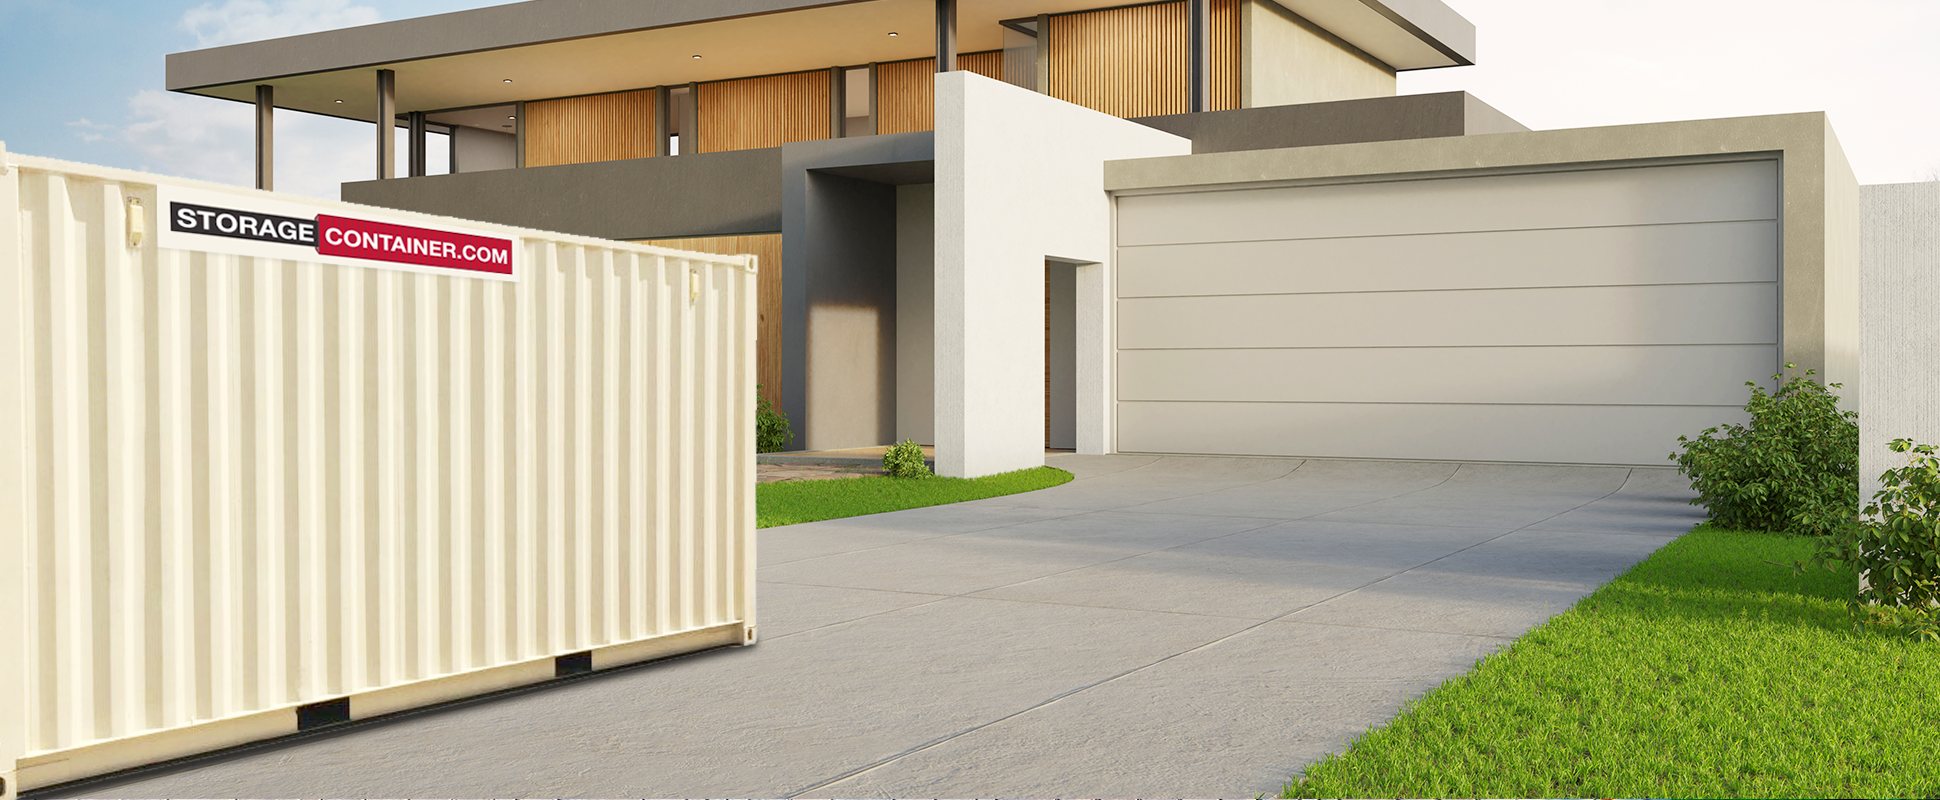 Residential Mobile Storage Solutions